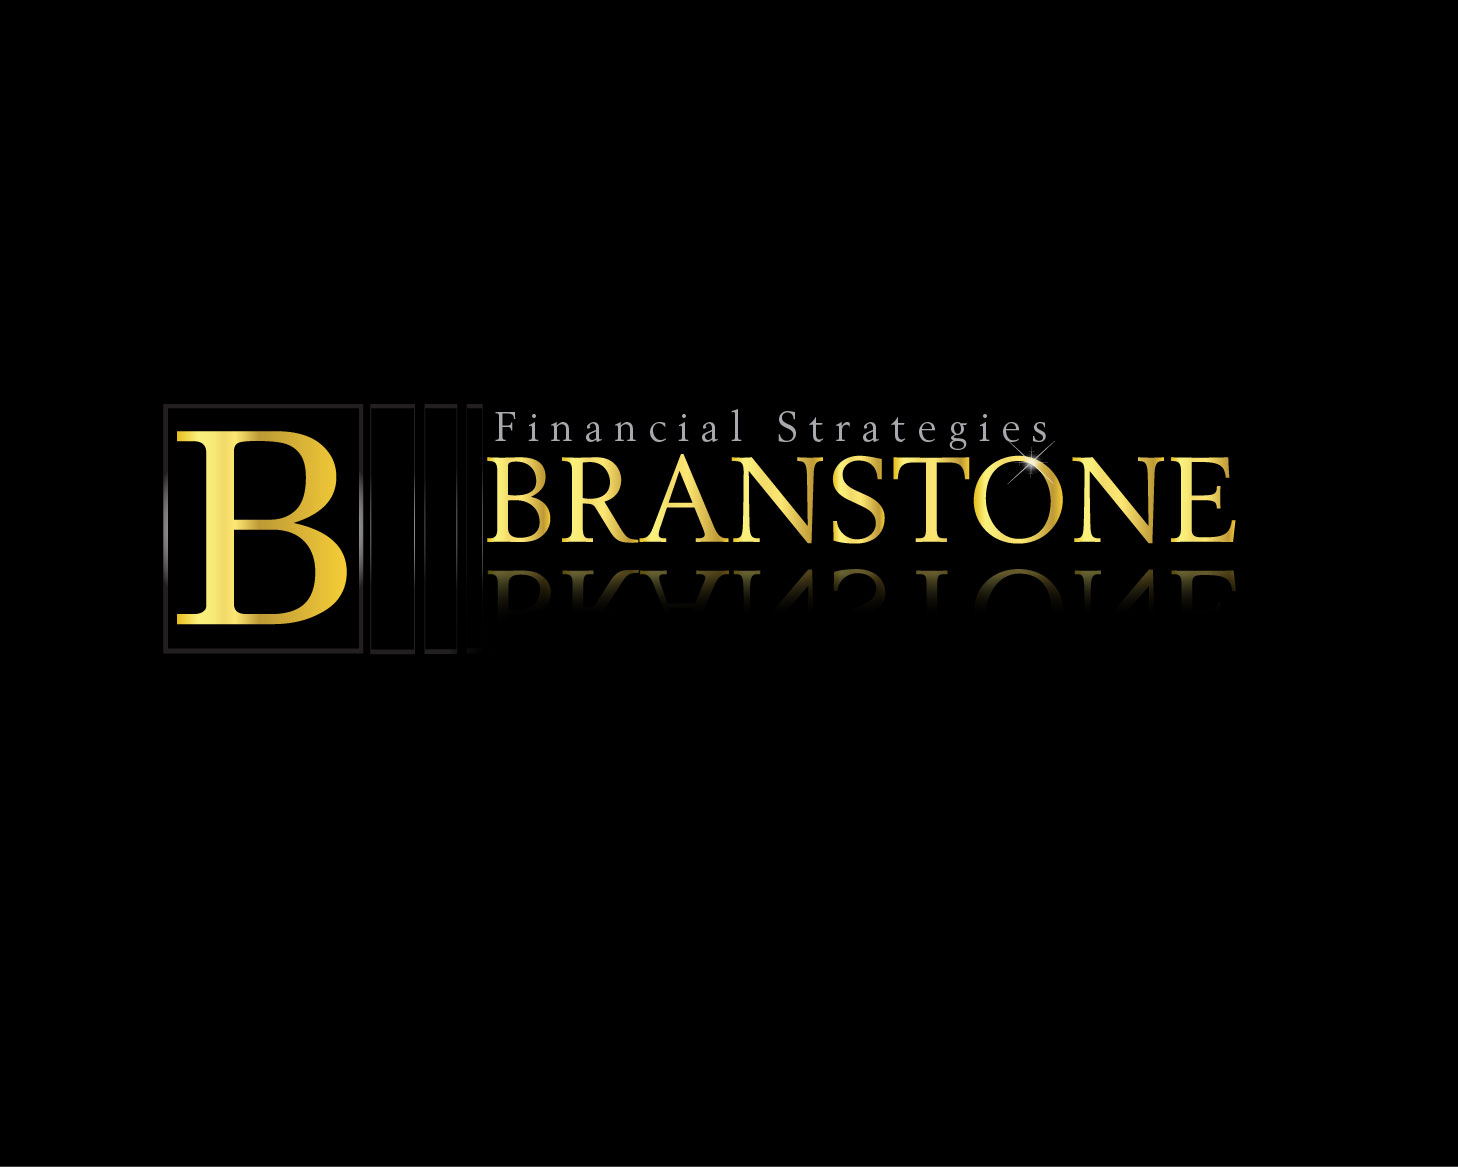 Logo Design by Rowel Samson - Entry No. 163 in the Logo Design Contest Inspiring Logo Design for Branstone Financial Strategies.